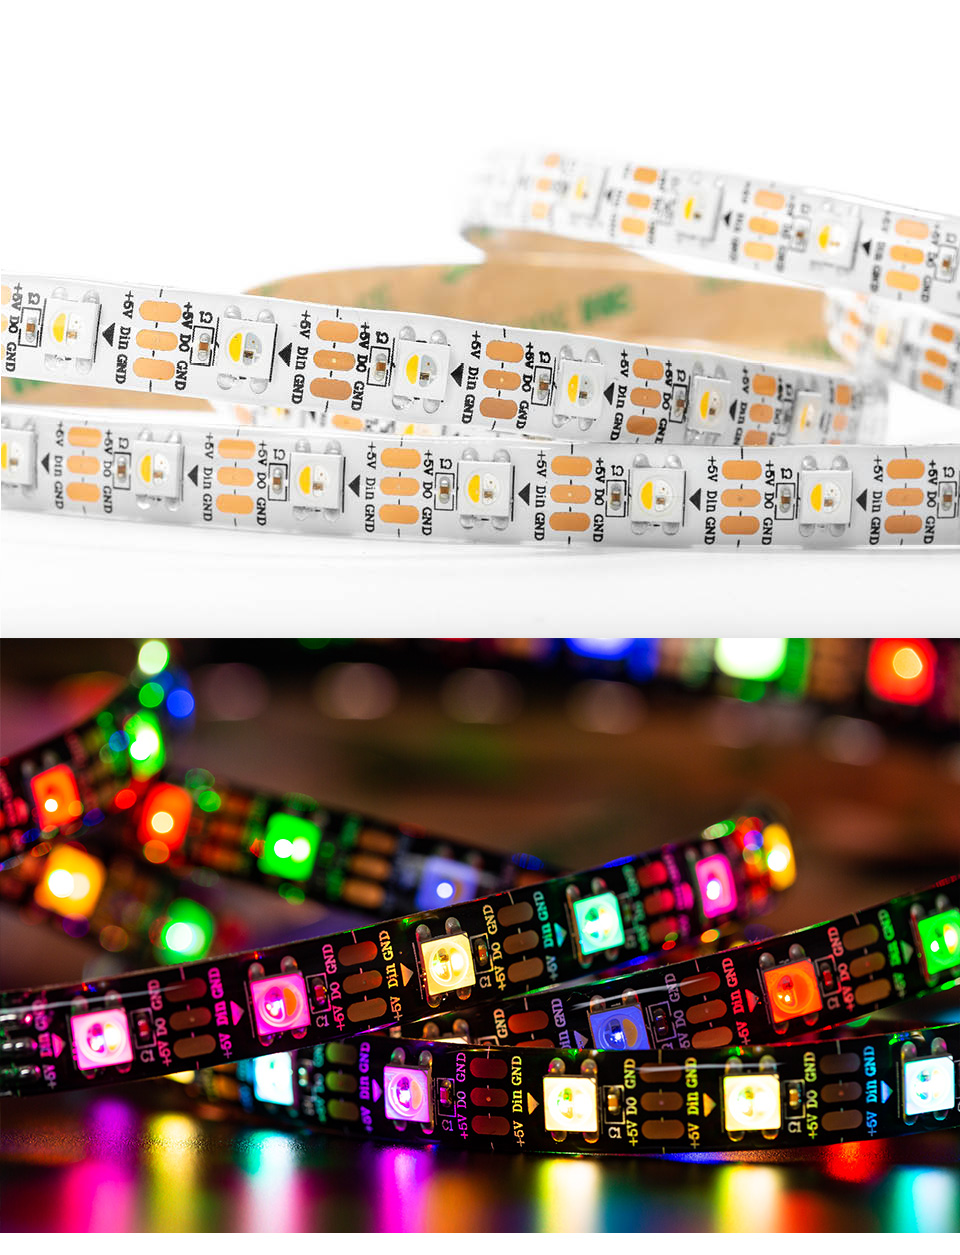 SK6812 RGBW (similar ws2812b) 4 in 1 1m/4m/5m 30/60/144 leds/pixels/m individual addressable led strip wwa ww nw IP30/65/67 DC5V